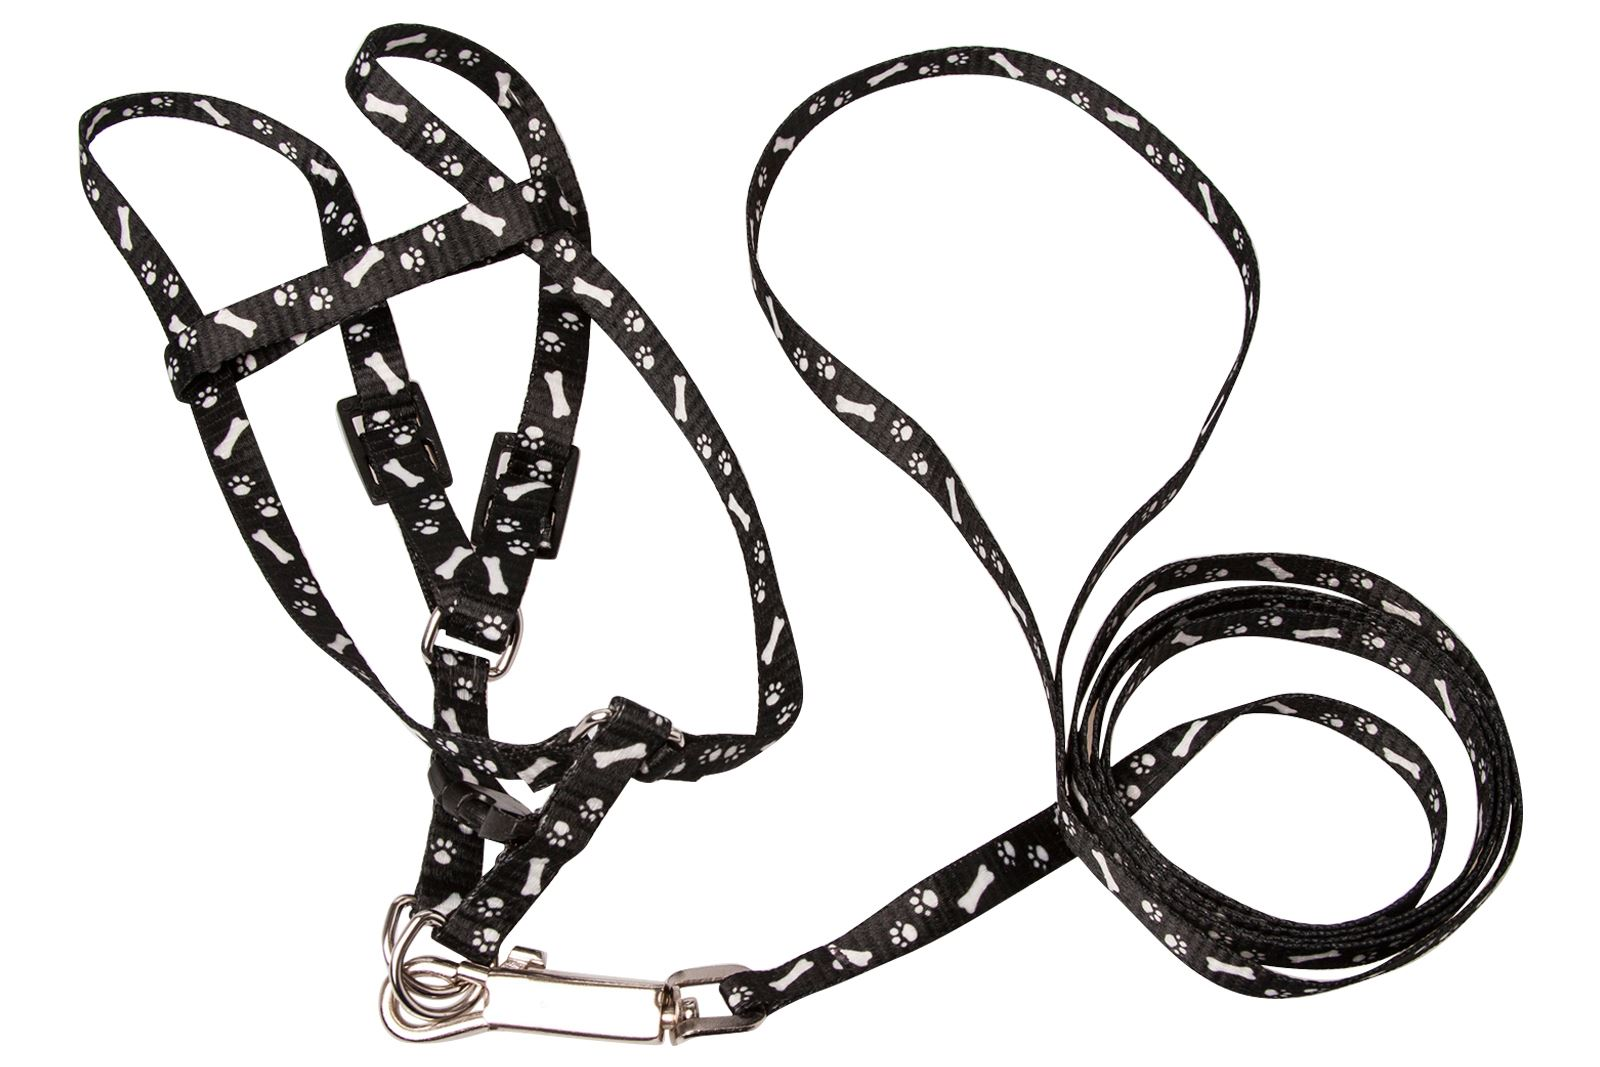 Small Jumping Harnesses For Dogs